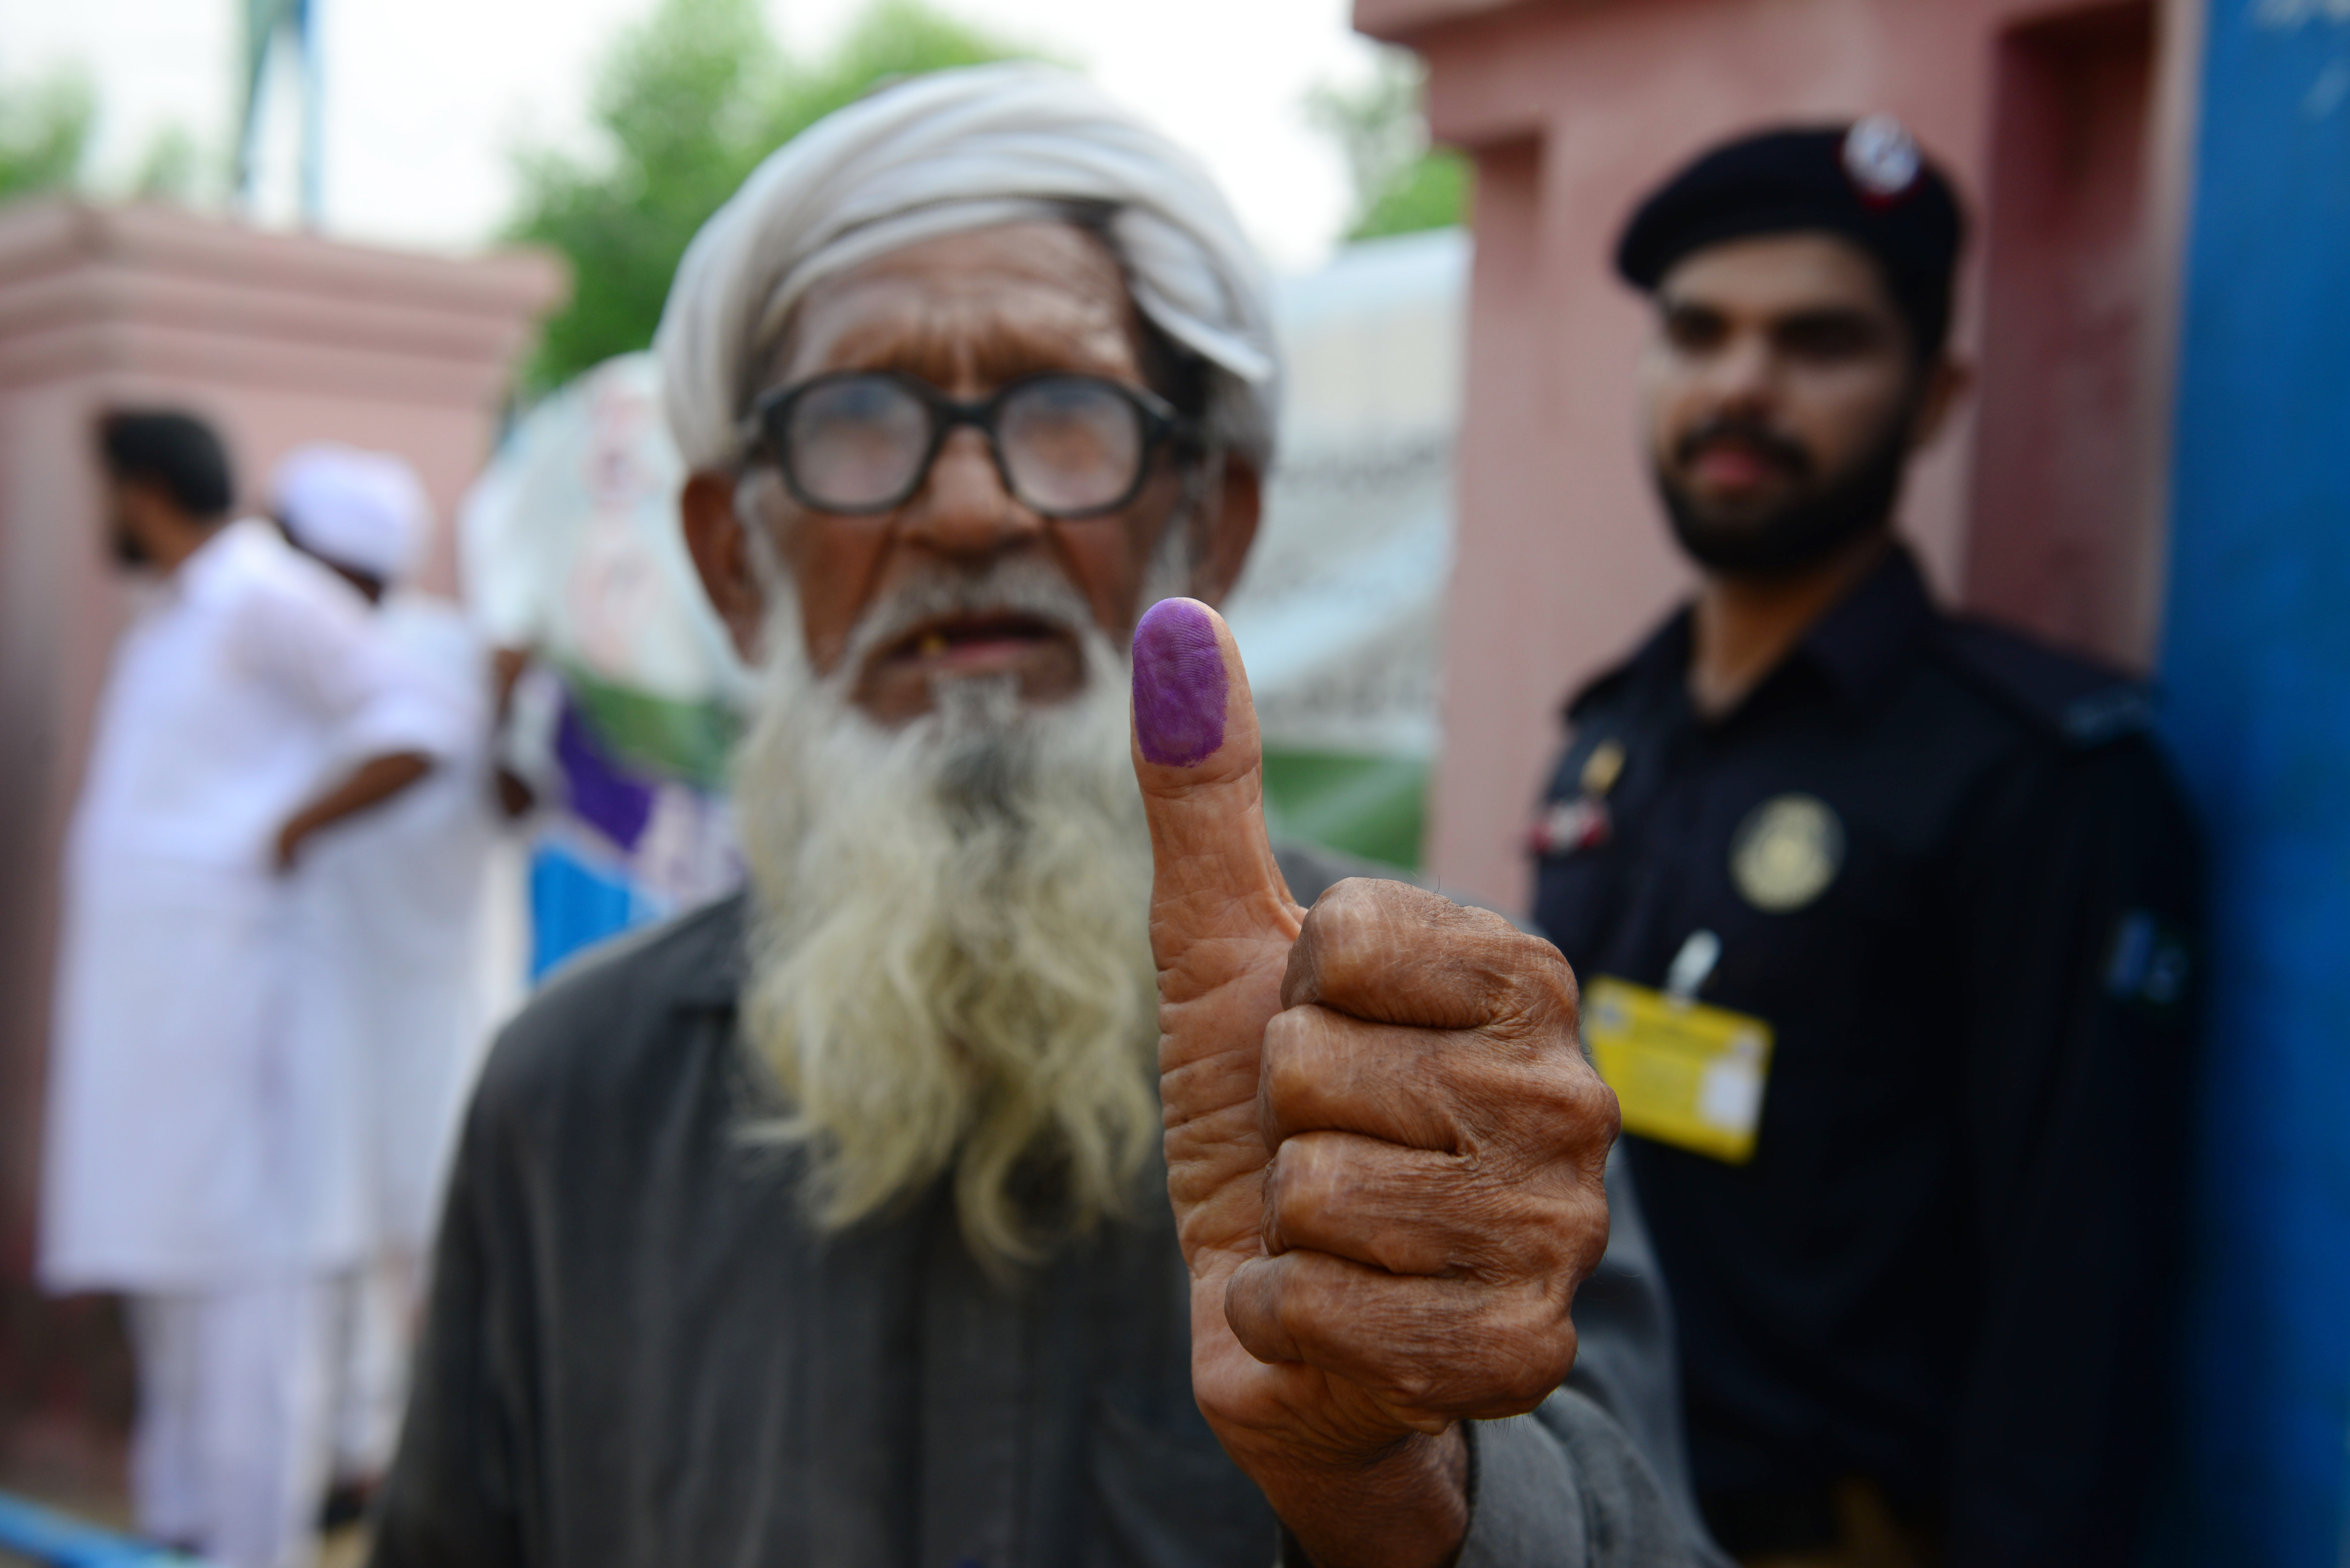 Pakistani voters defy violence, await results of tight race